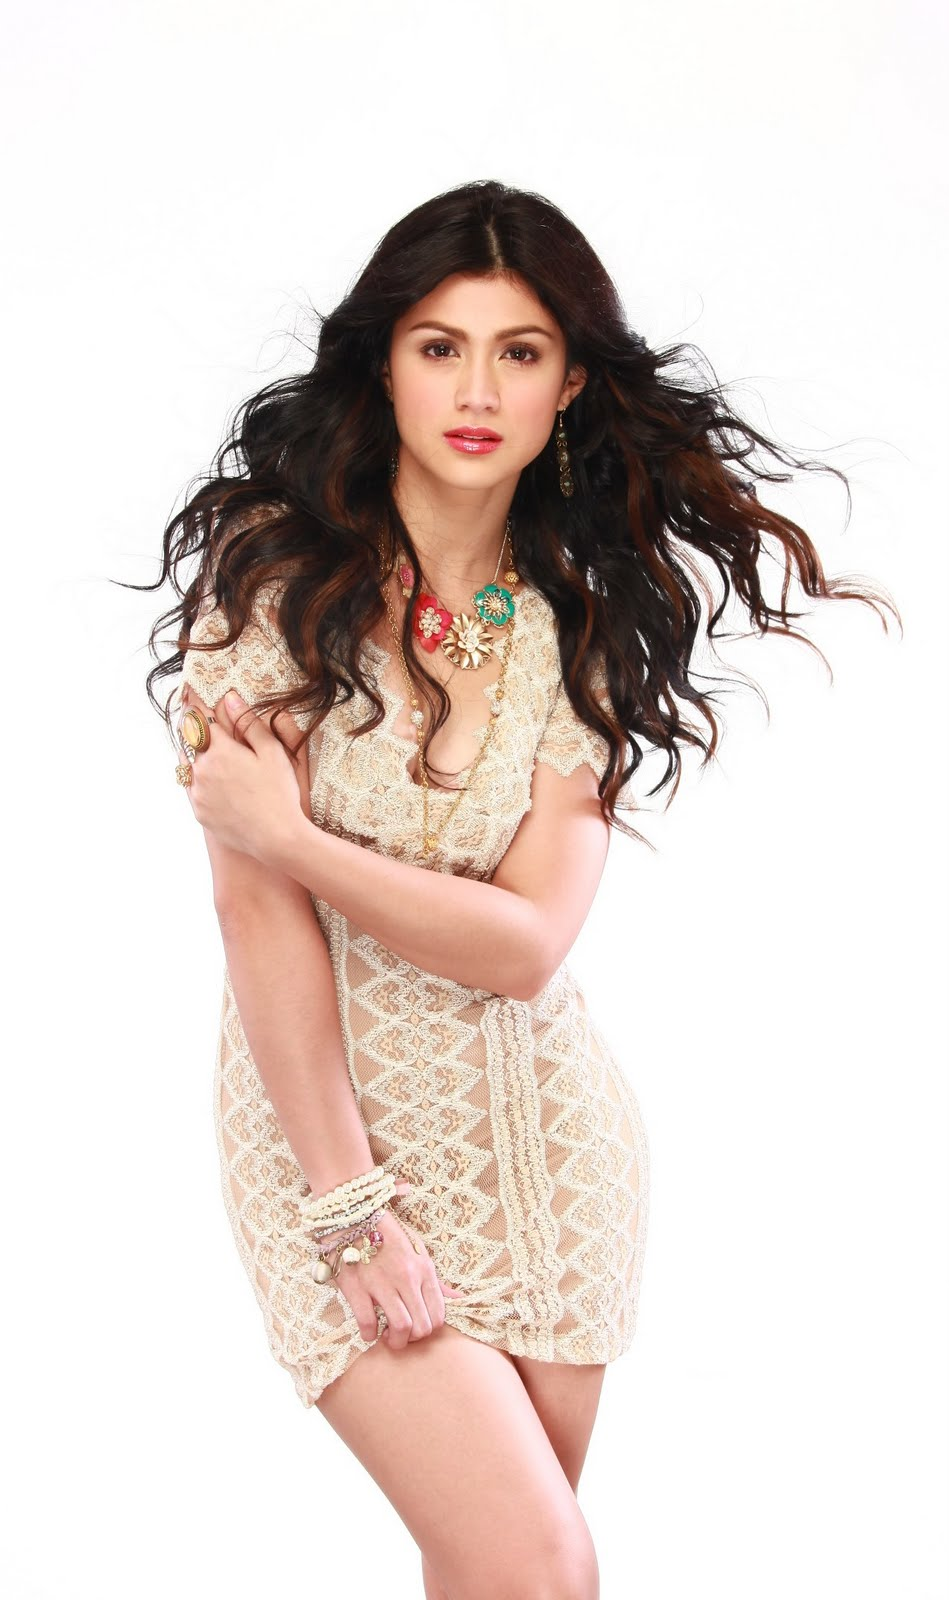 ... featuring Independence Day birthday celebrant/actress Carla Abellana